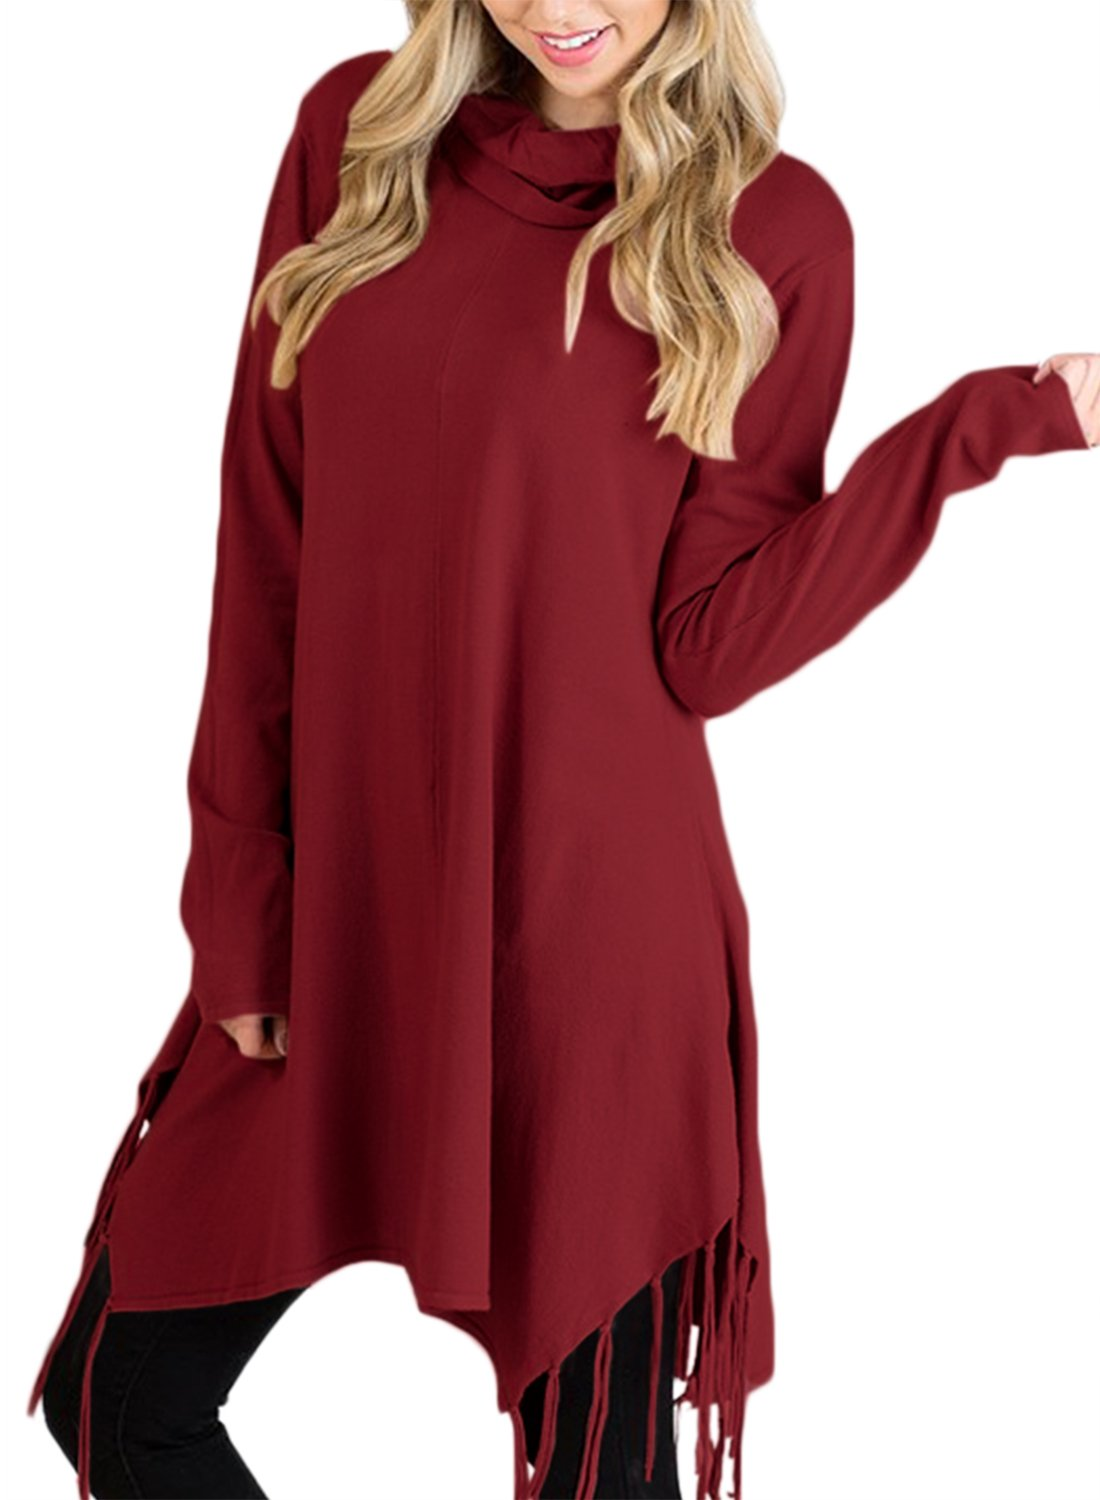 HOTAPEI Women's Casual Winter Fall Long Sleeve Knitted Tunic Sweatshirts Loose Cowl Neck Fringe Tunic Sweater Dress Blouse Tops Burgundy Small